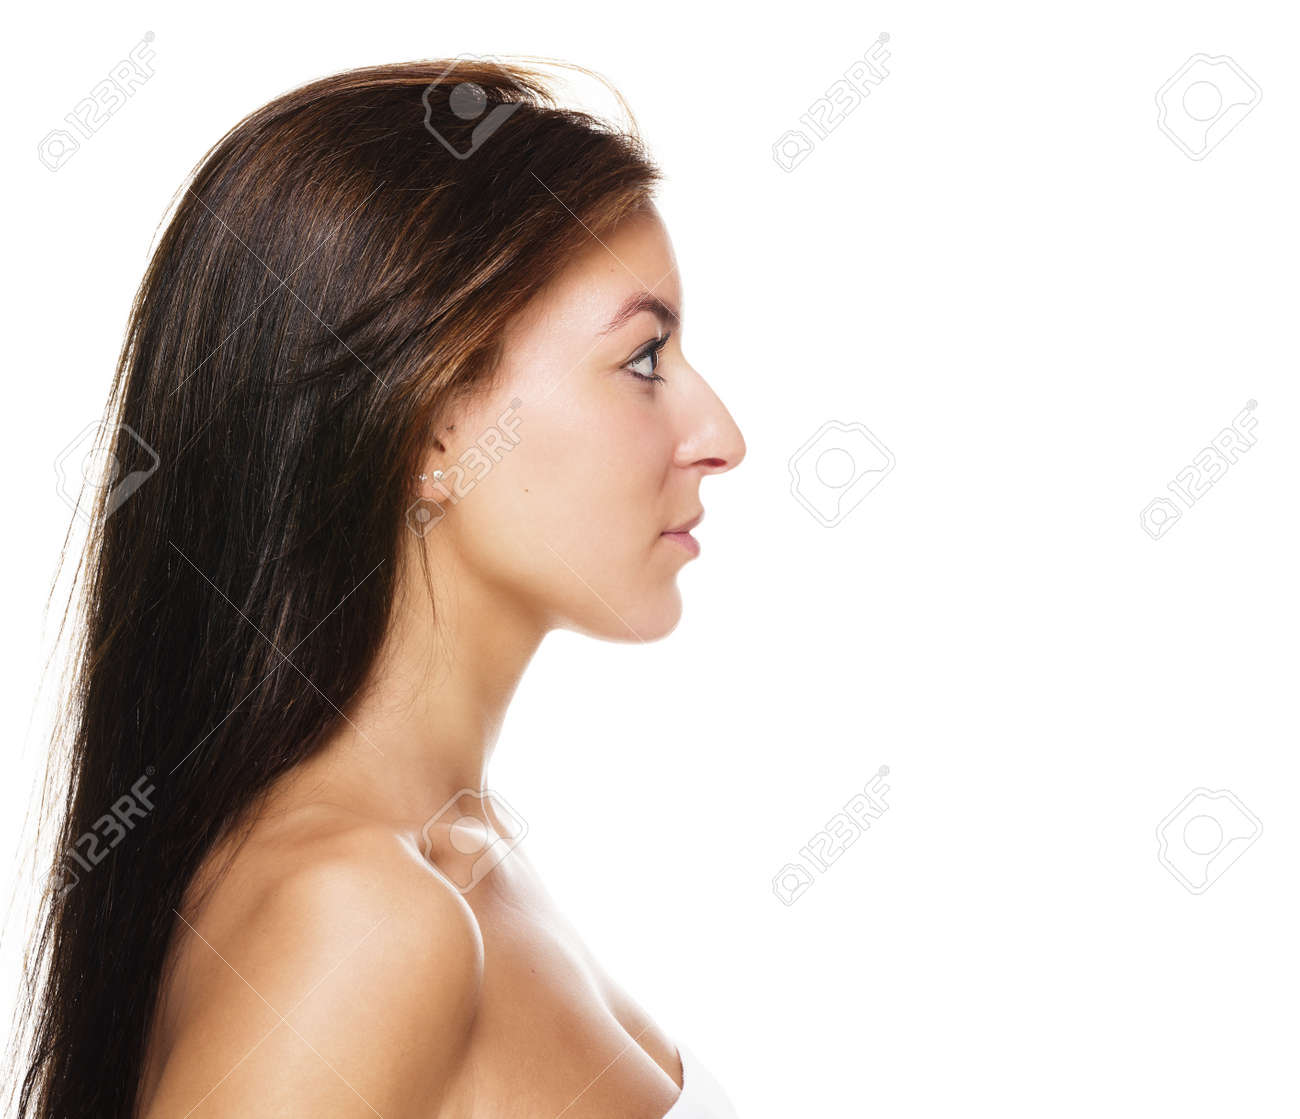 side view of a beautiful brunette woman on white background Stock Photo - 15574580